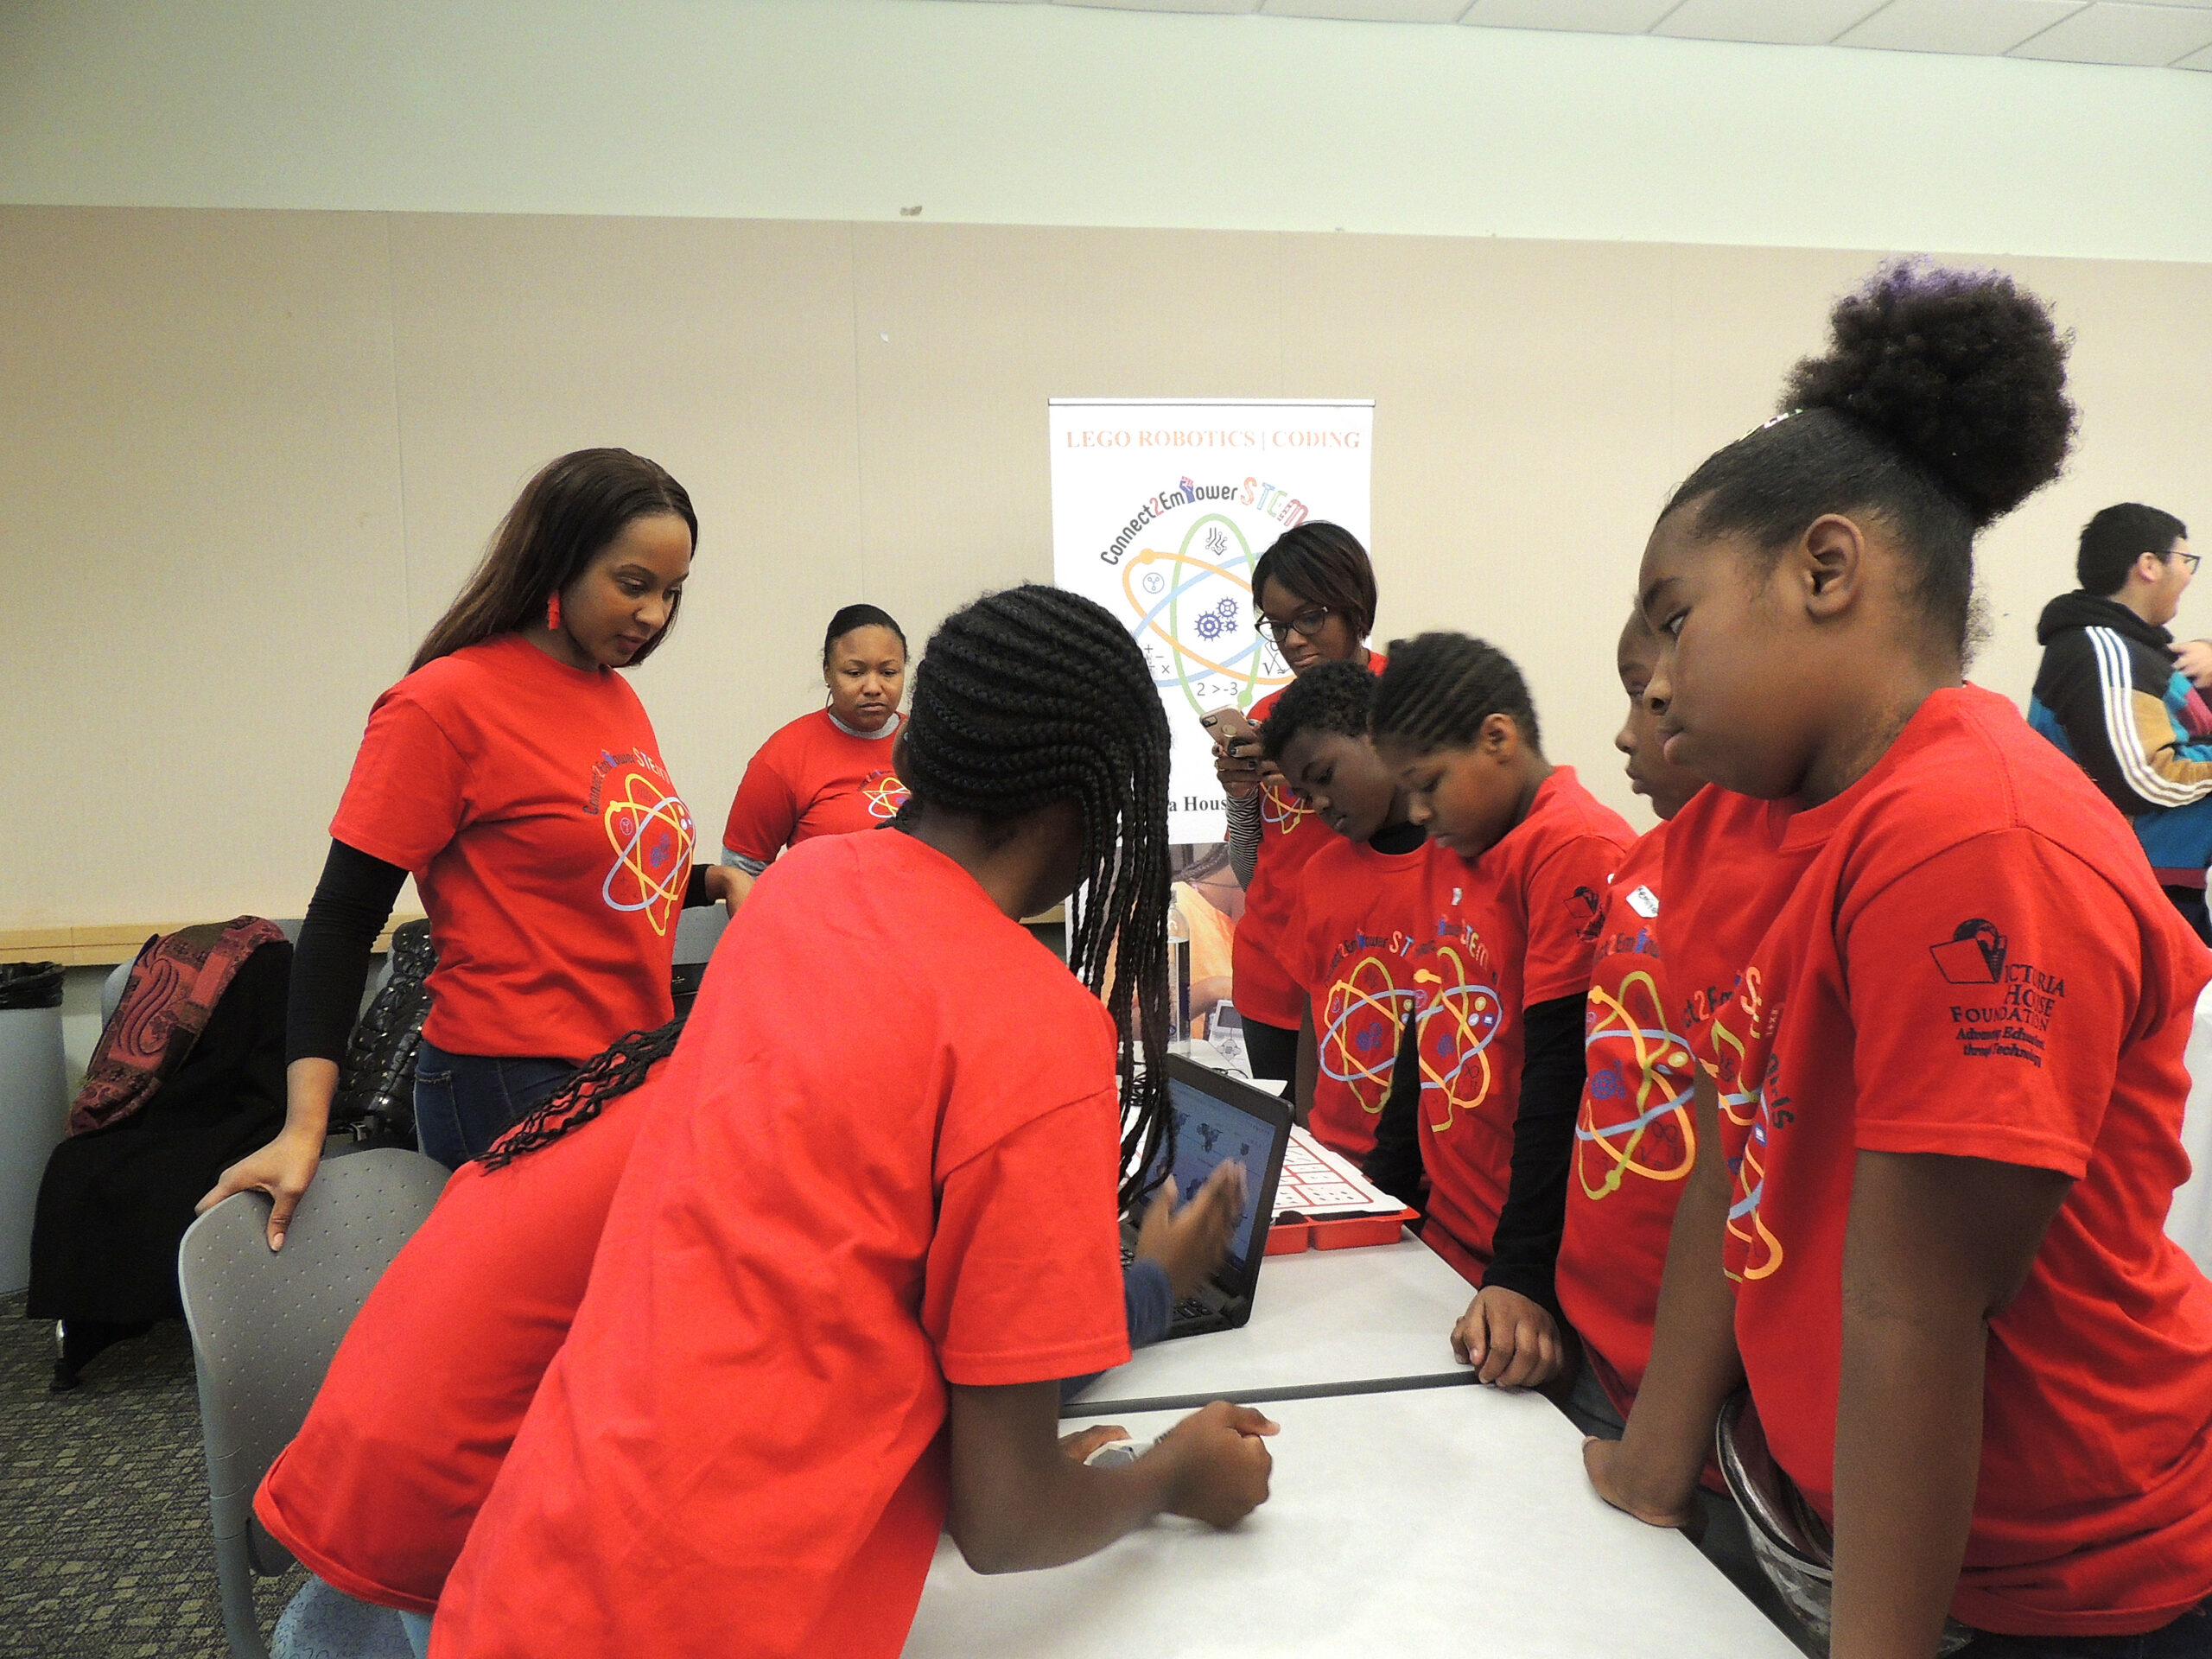 Participants at the VHF Connect2Empower STEM Girls Launching